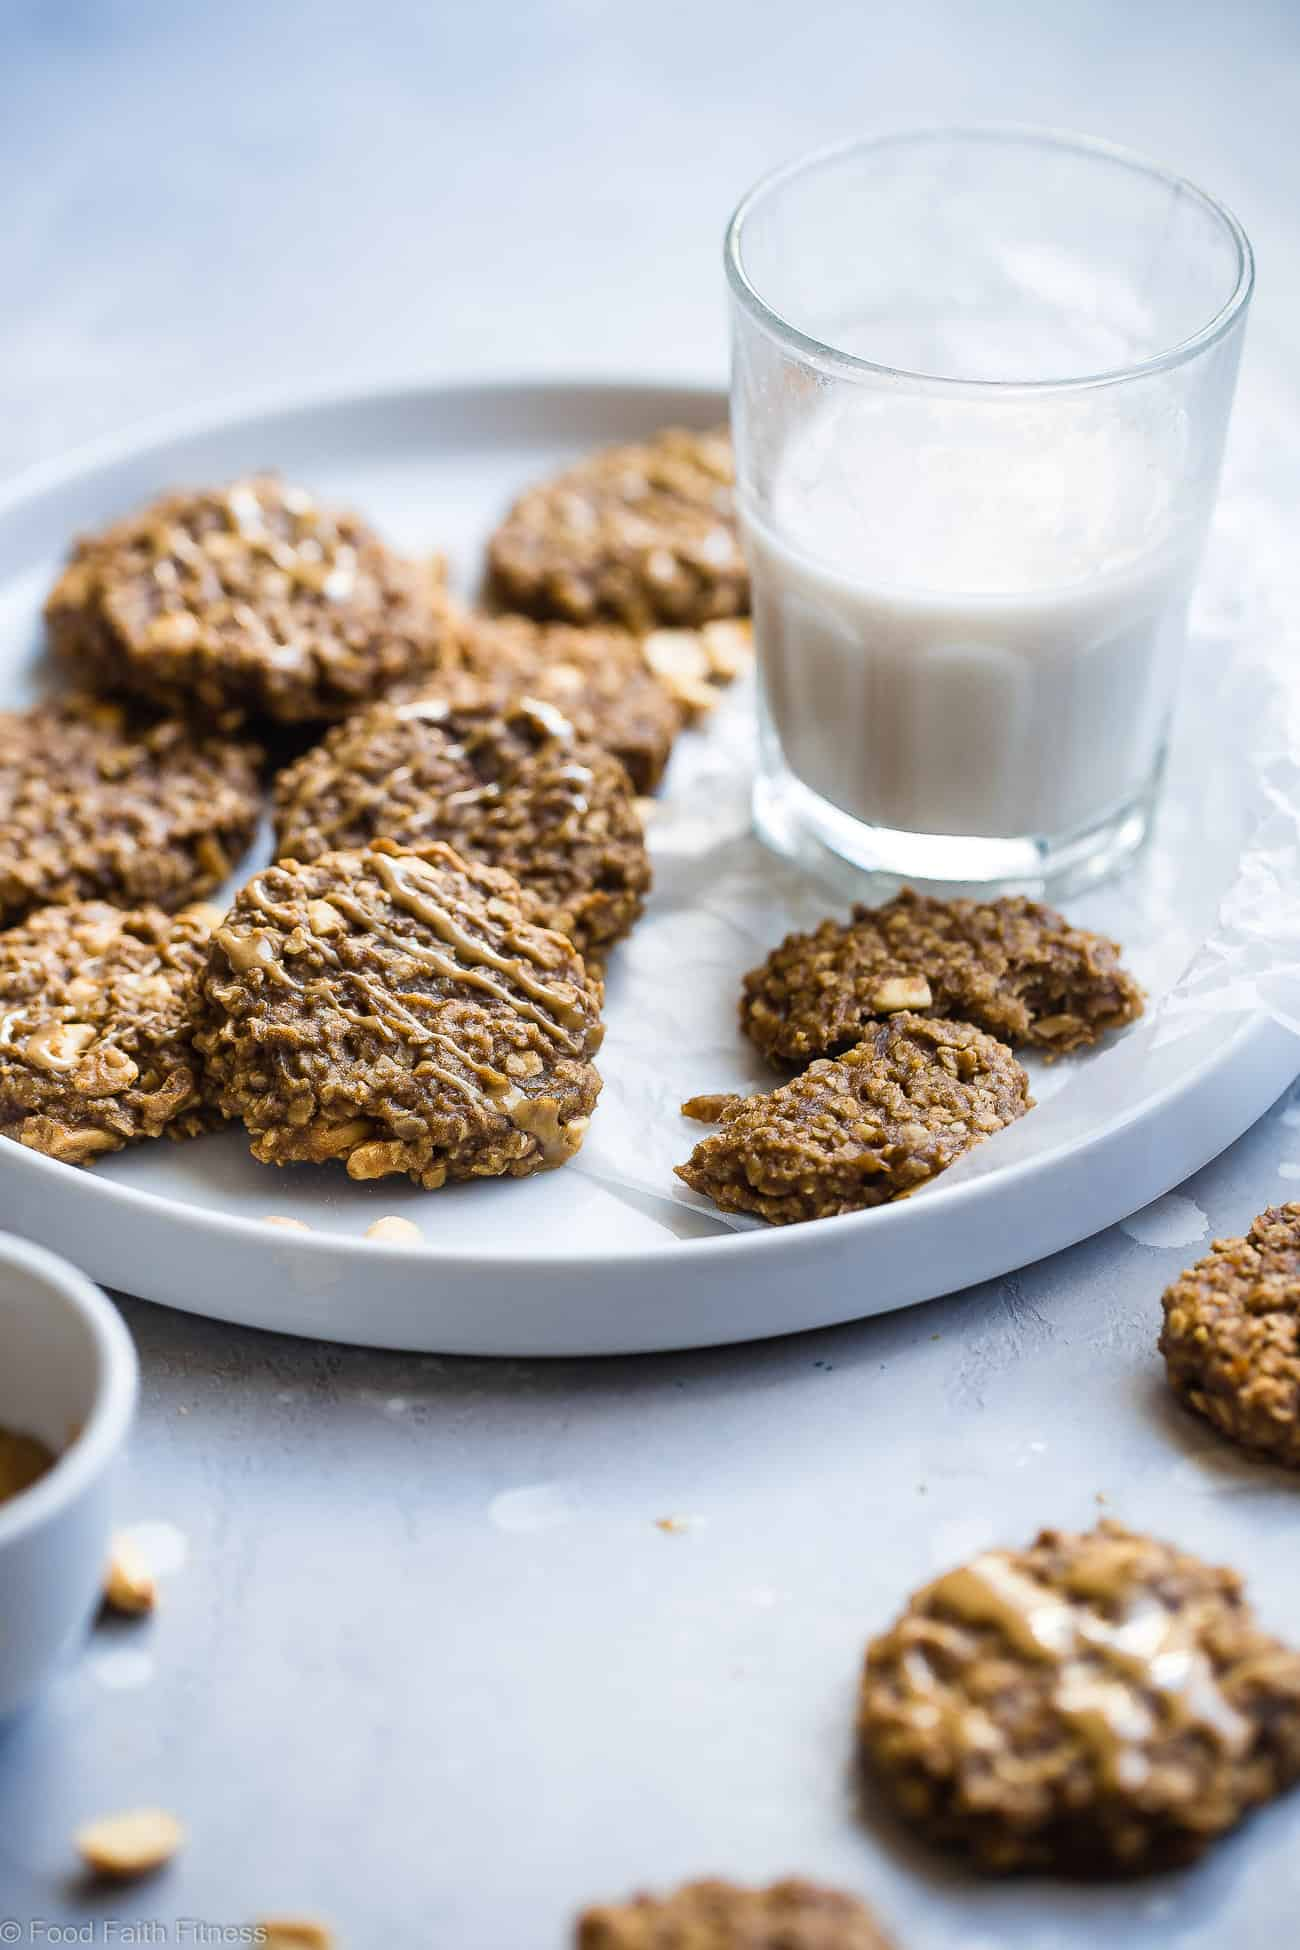 Easy Peanut Butter Oatmeal Banana Cookies - These recipe for banana cookies use only 5 simple ingredients and are dairy free and vegan friendly! A healthy treat for kids and adults that can be a breakfast or snack! | Foodfaithfitness.com | @FoodFaithFit